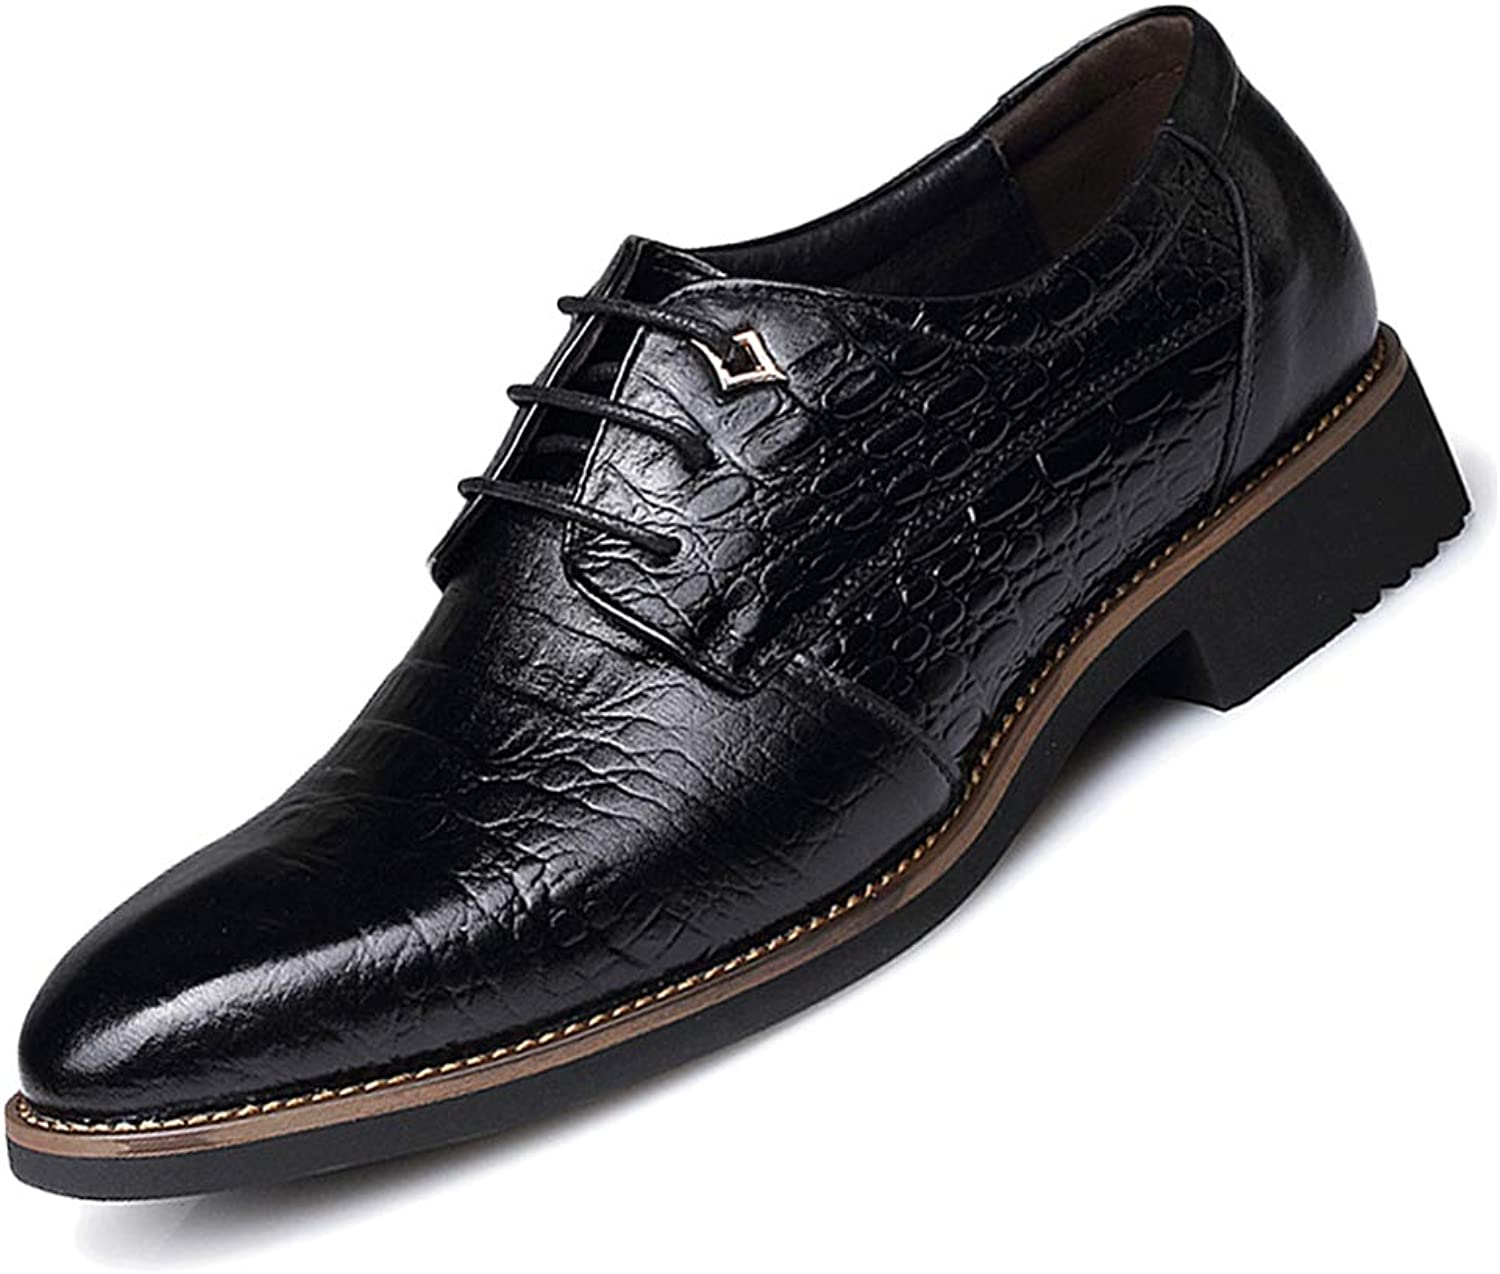 GBRALX Men's Classic Derby Oxford shoes Classic Pointed Toe Lace-ups Casual Non-Slip Party Wedding Dress Uniform shoes